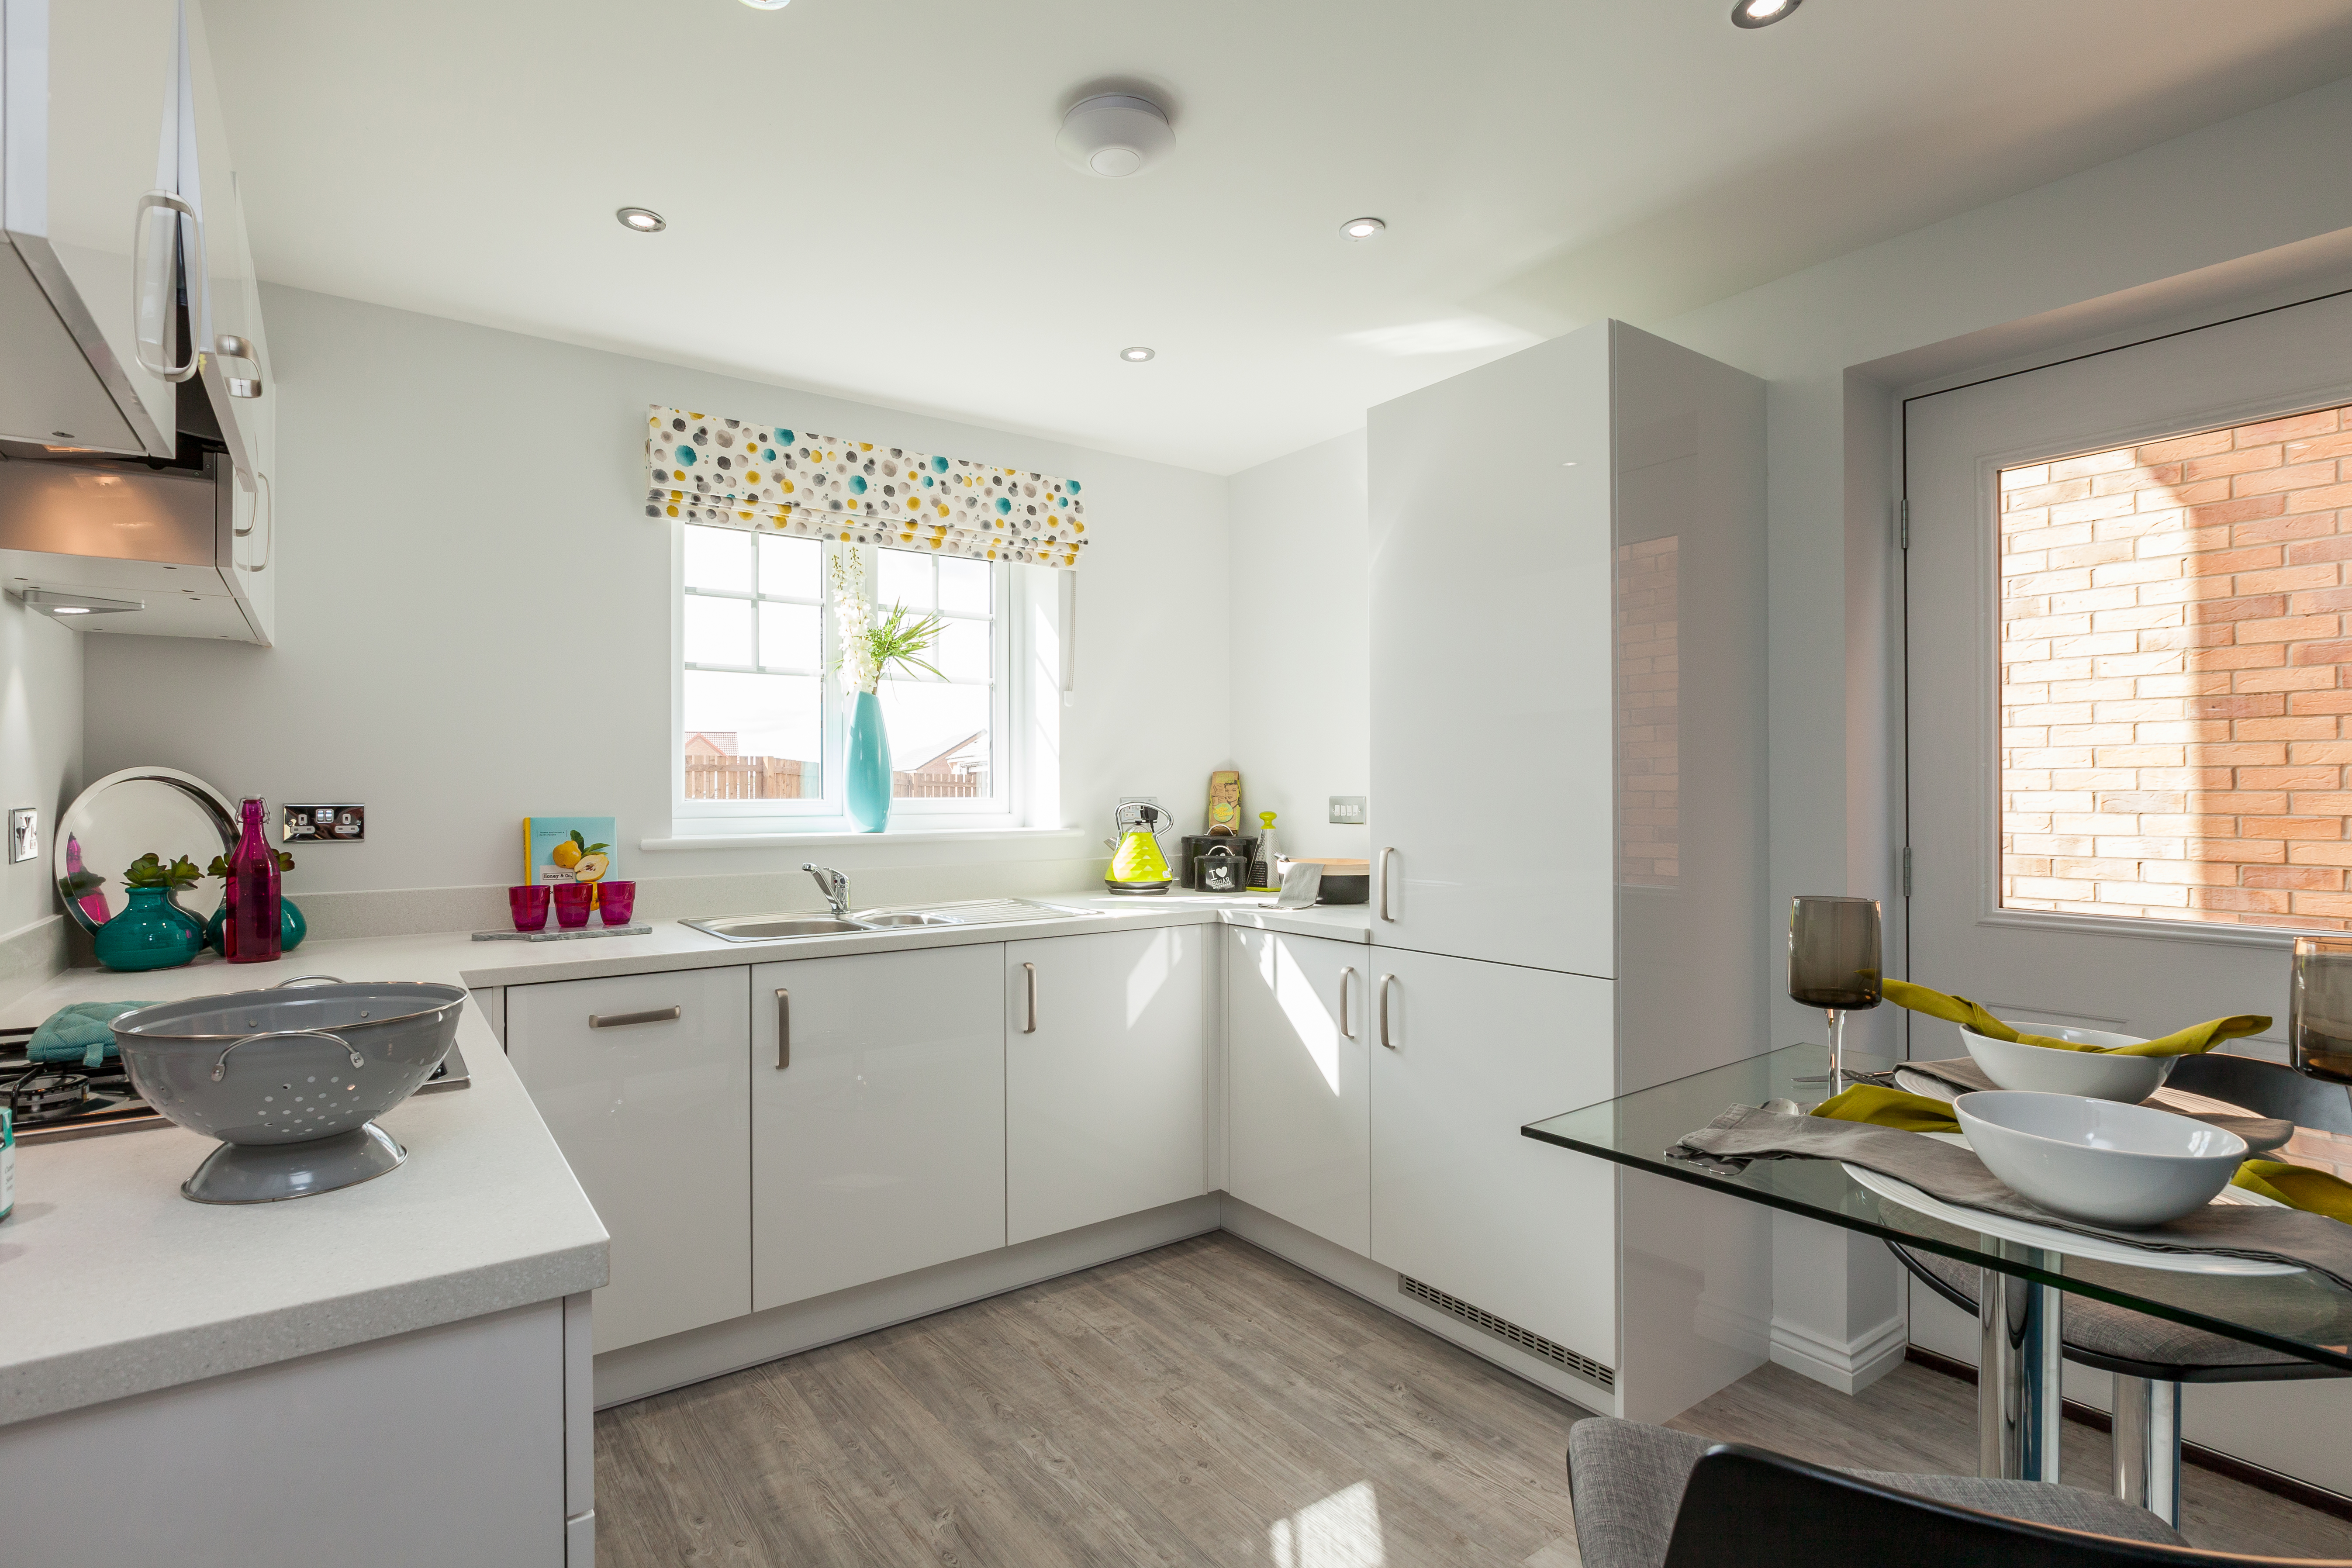 TW NY_Elderwood Park_PD32_Aldenham_Kitchen 1